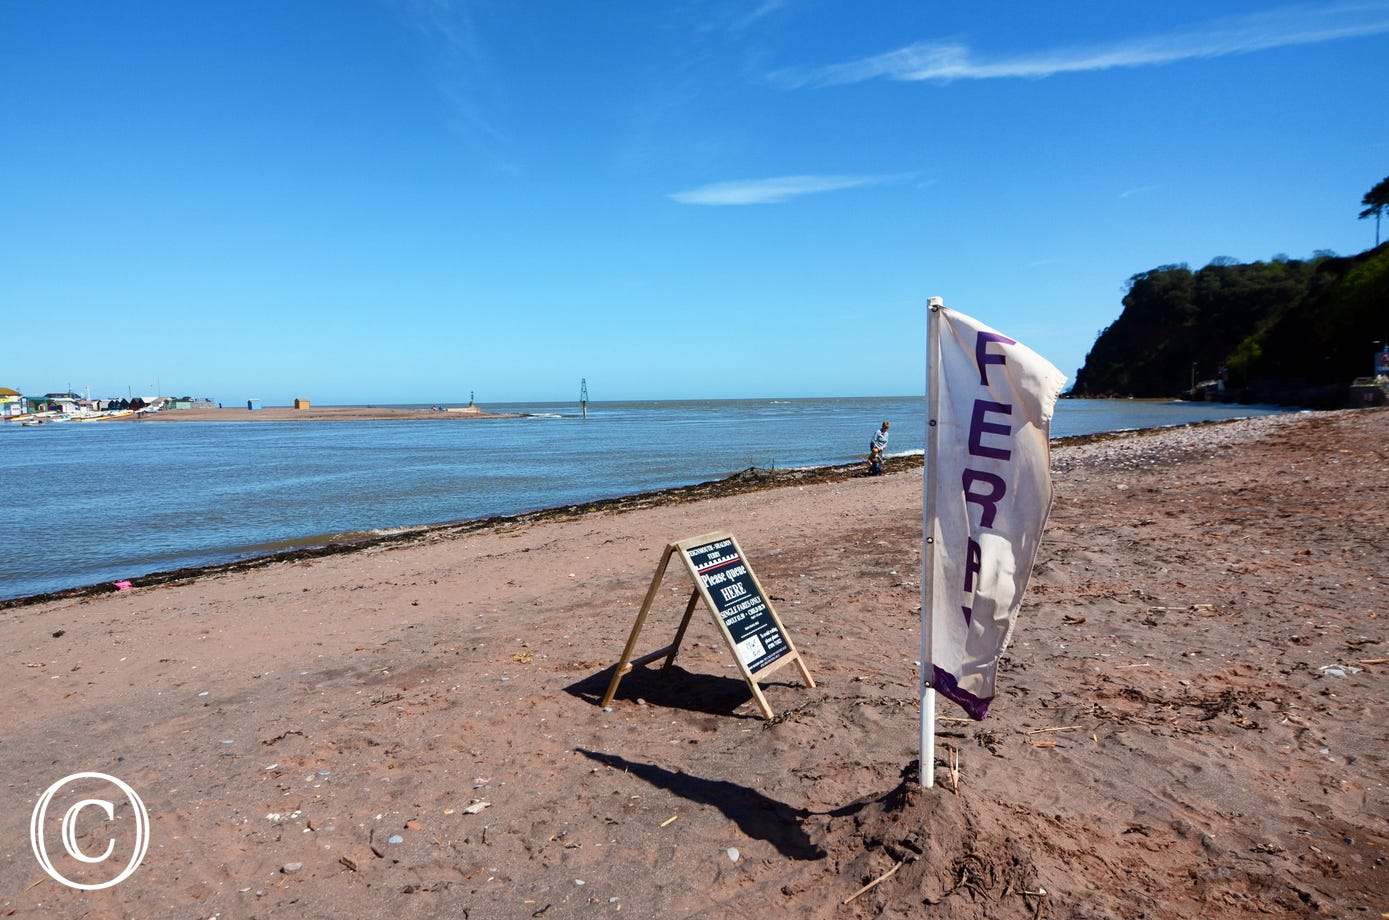 Catch the ferry from Shaldon Beach